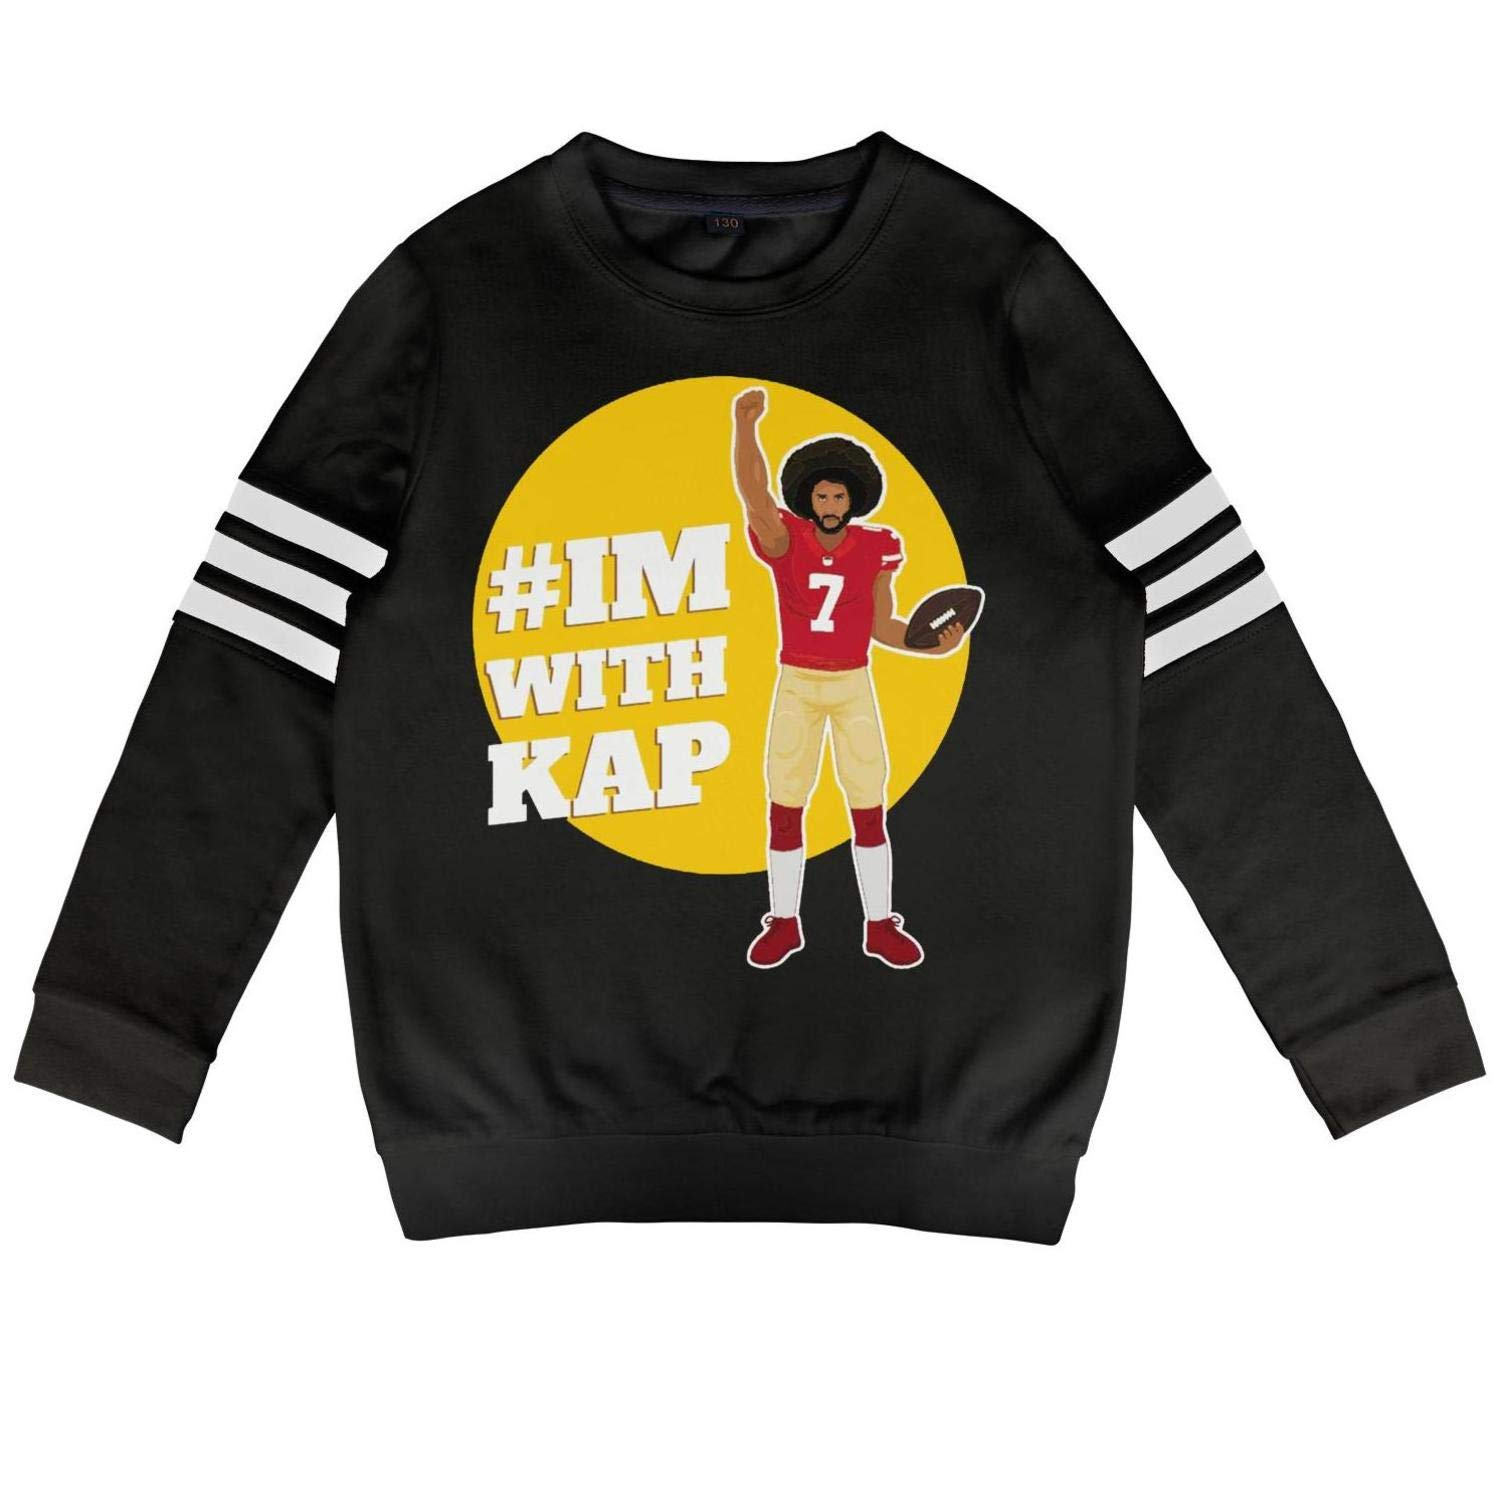 Skrchaa Toddler Children Hoodies Colin-I am with kap-Kaepernick 7 Soft O-Neck